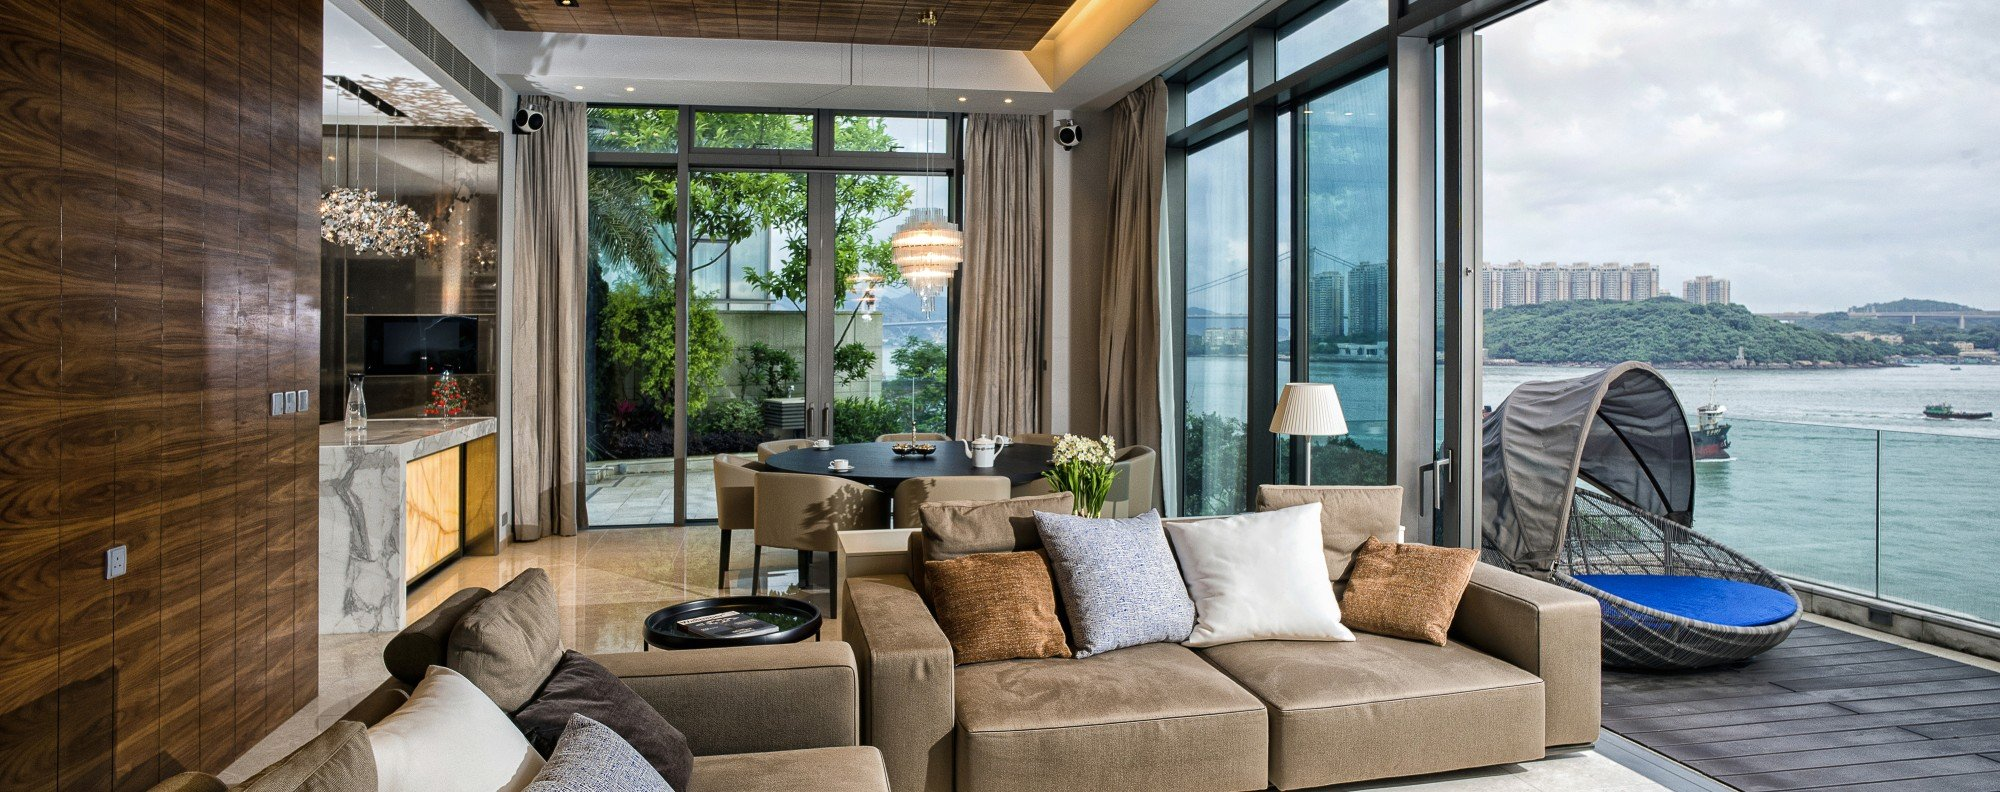 Stunning 2400 sq ft hong kong duplex has views that stop you in your tracks post magazine south china morning post